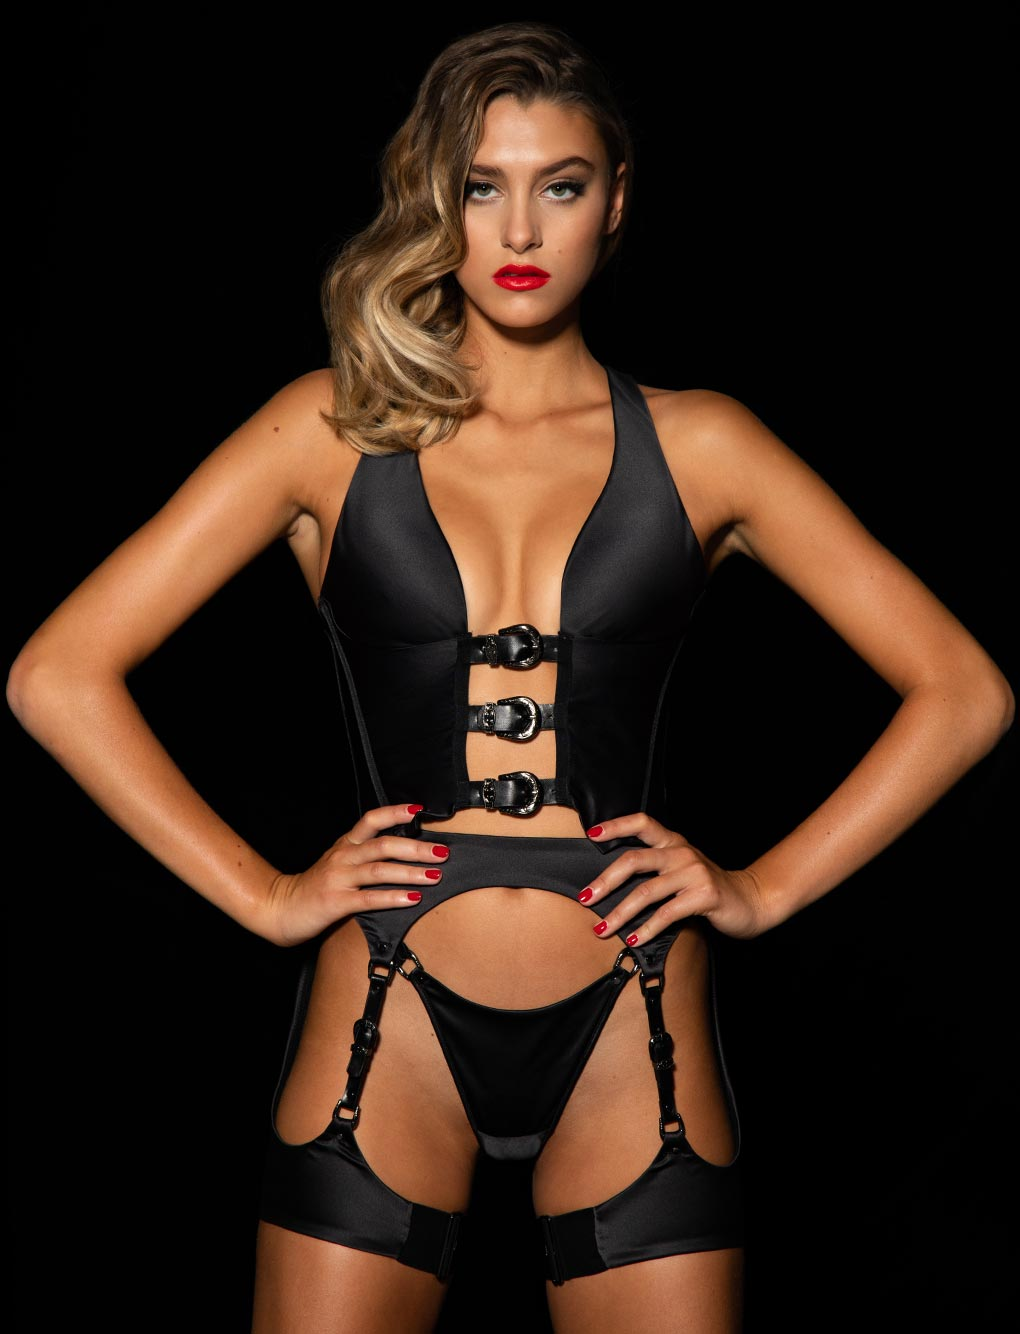 Max Gilet Suspender Set